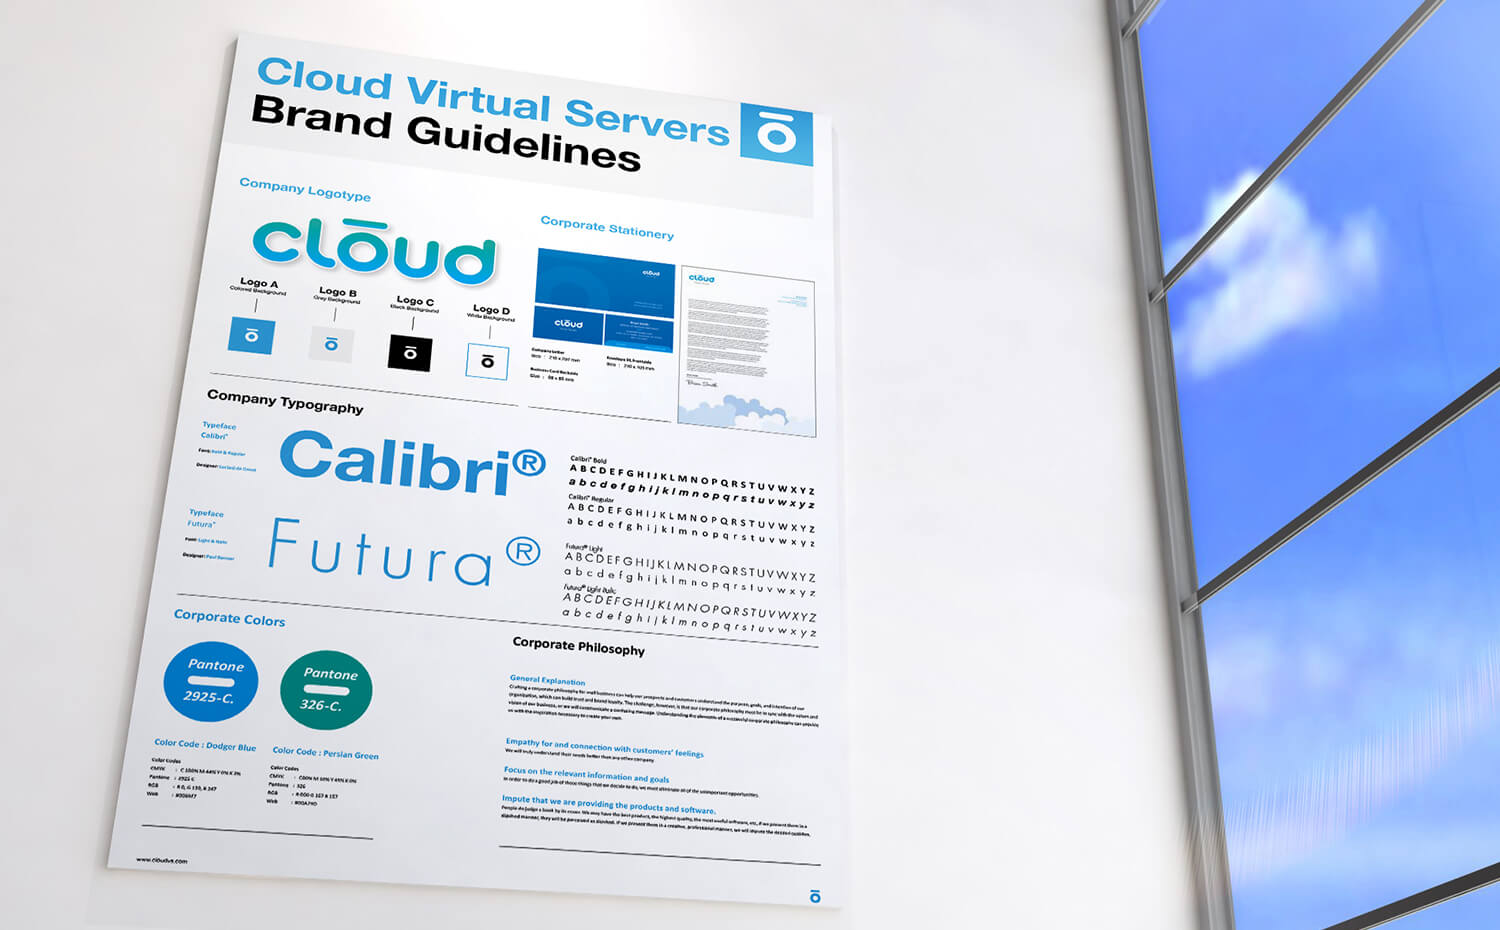 cloud virtual servers - Branded Poster